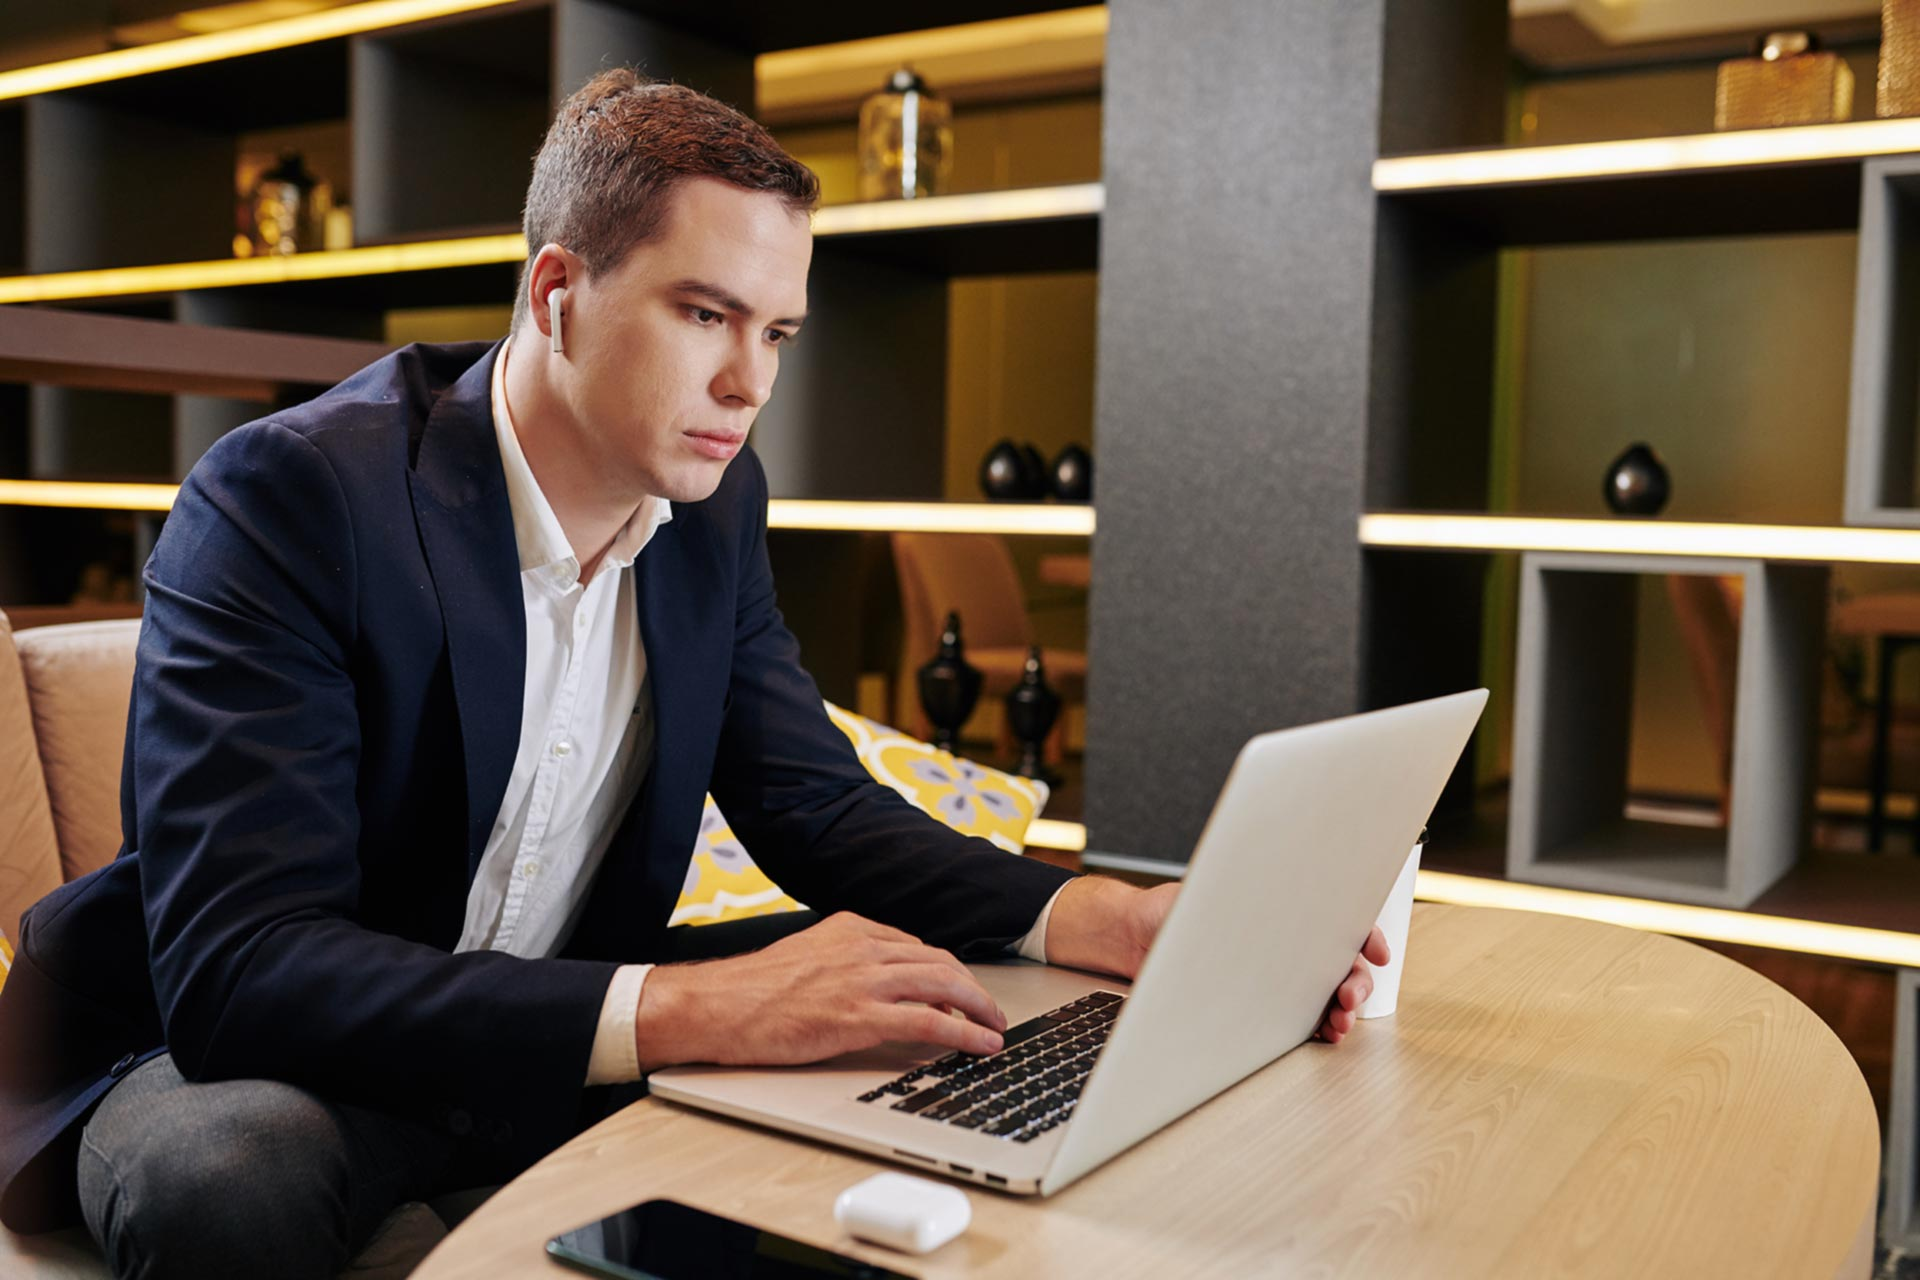 Man reviewing an apostillized copy of documents